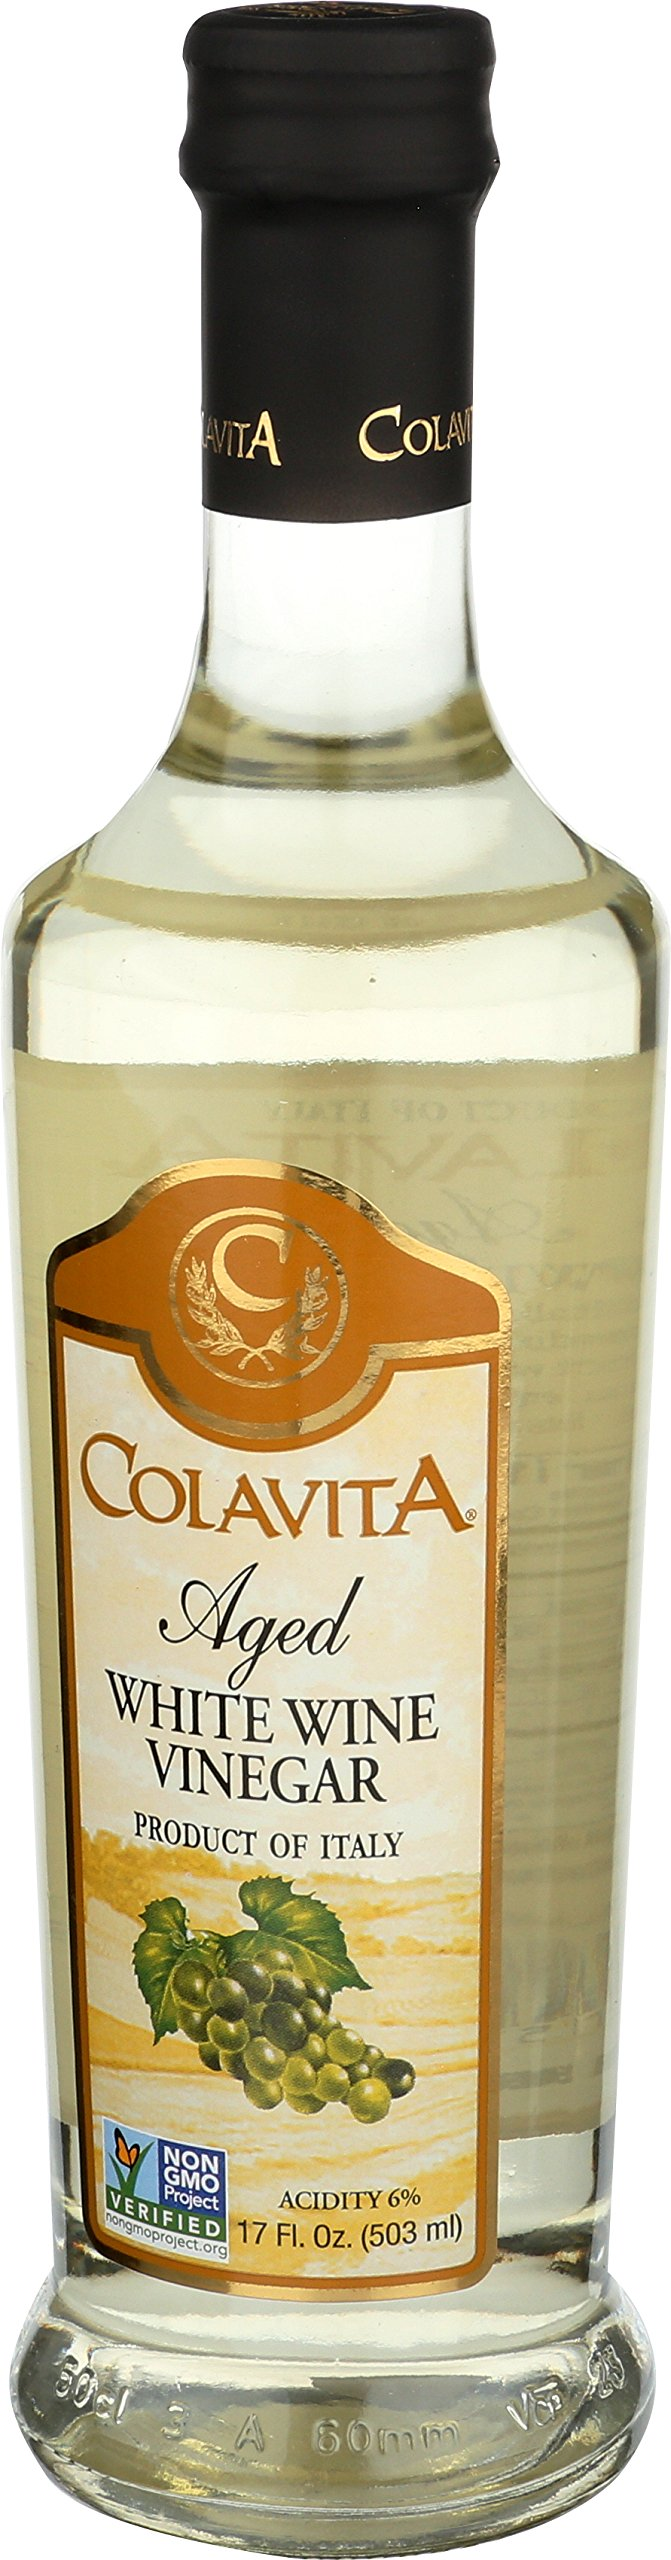 Colavita White Wine Vinegar, 17 oz by Colavita (Image #6)